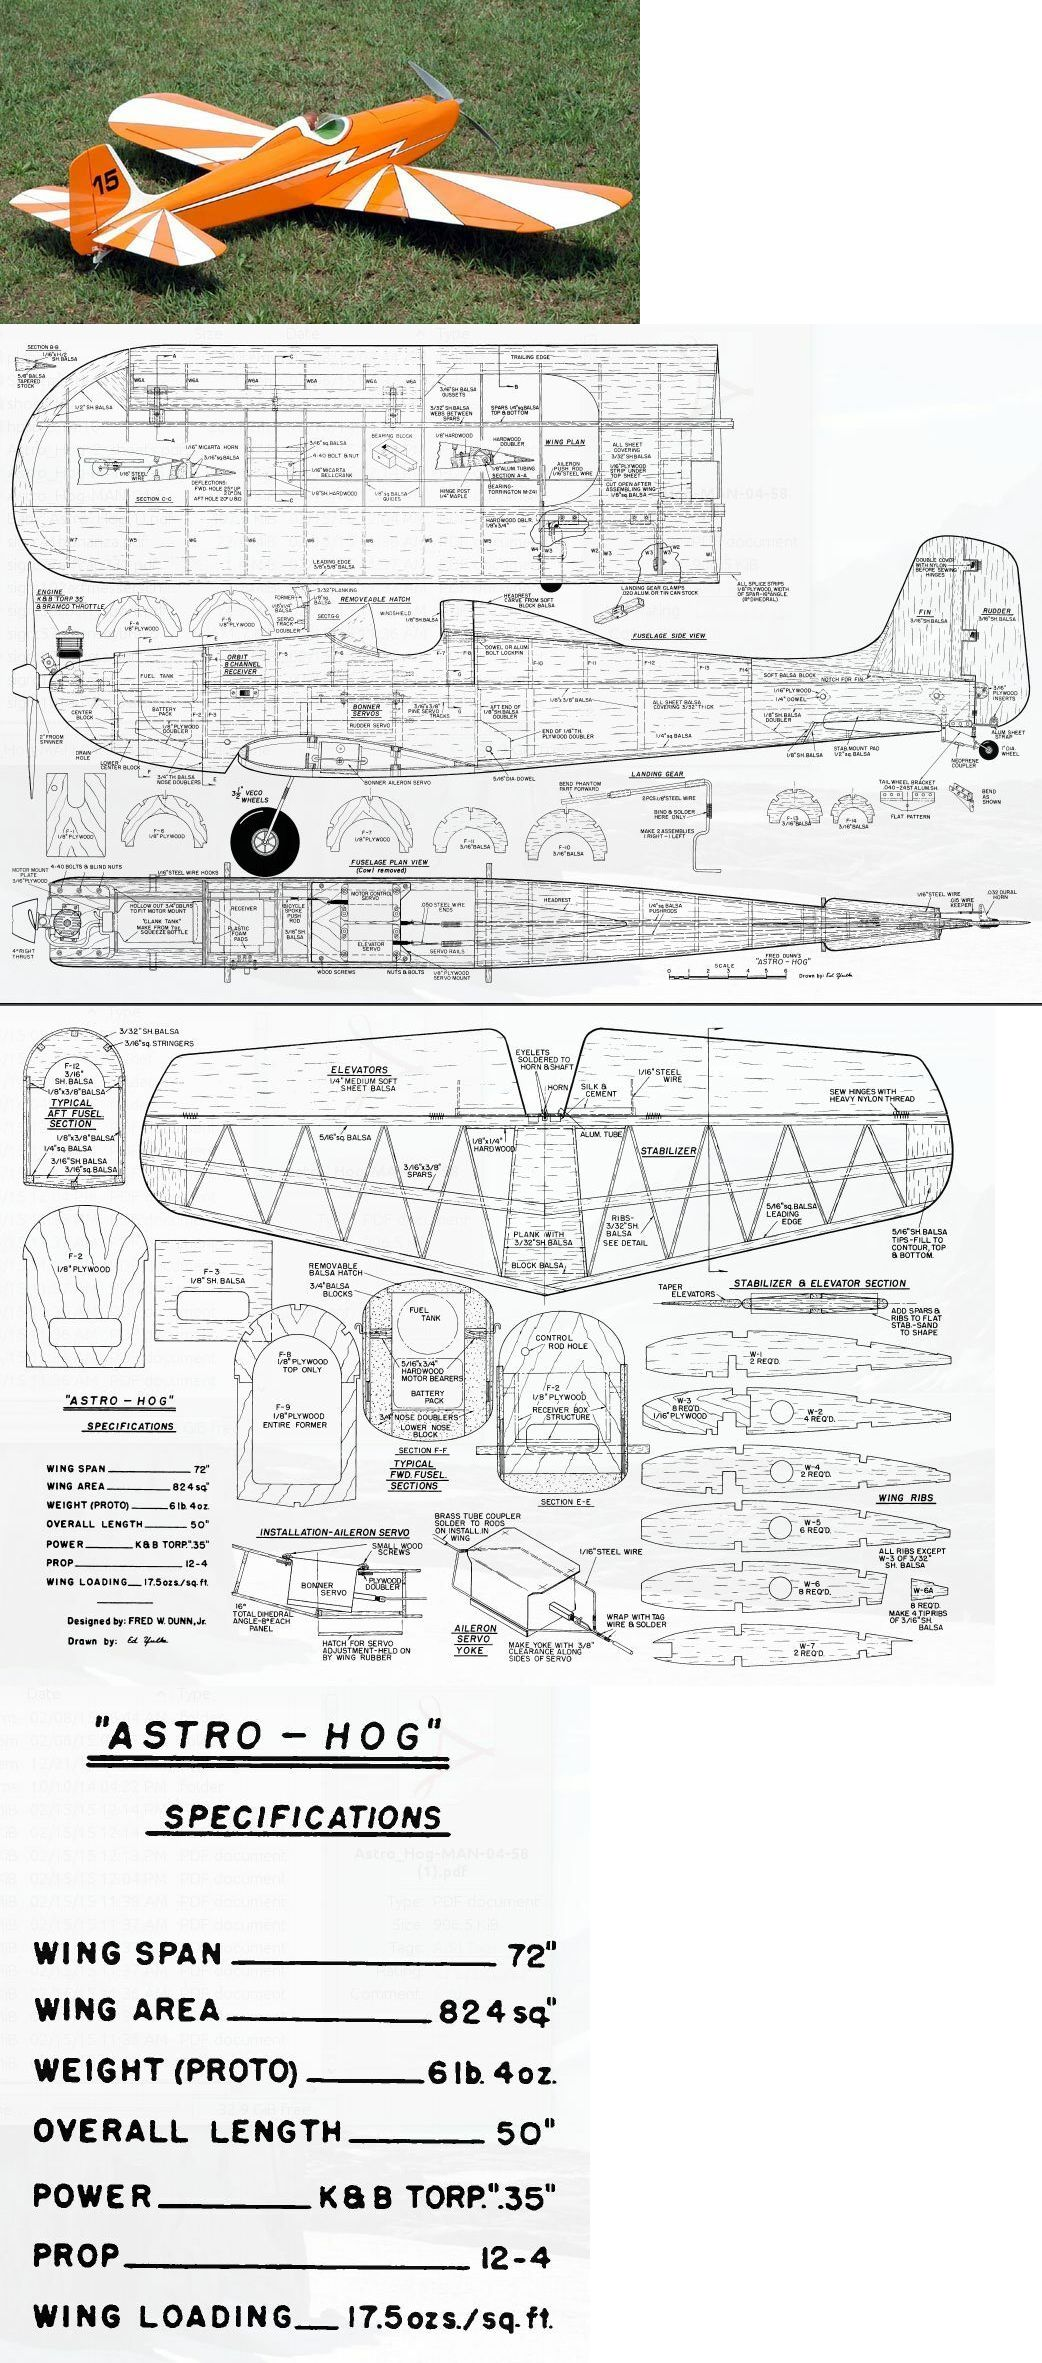 RC Plans Templates and Manuals 182212: Astro Hog 72 Inch